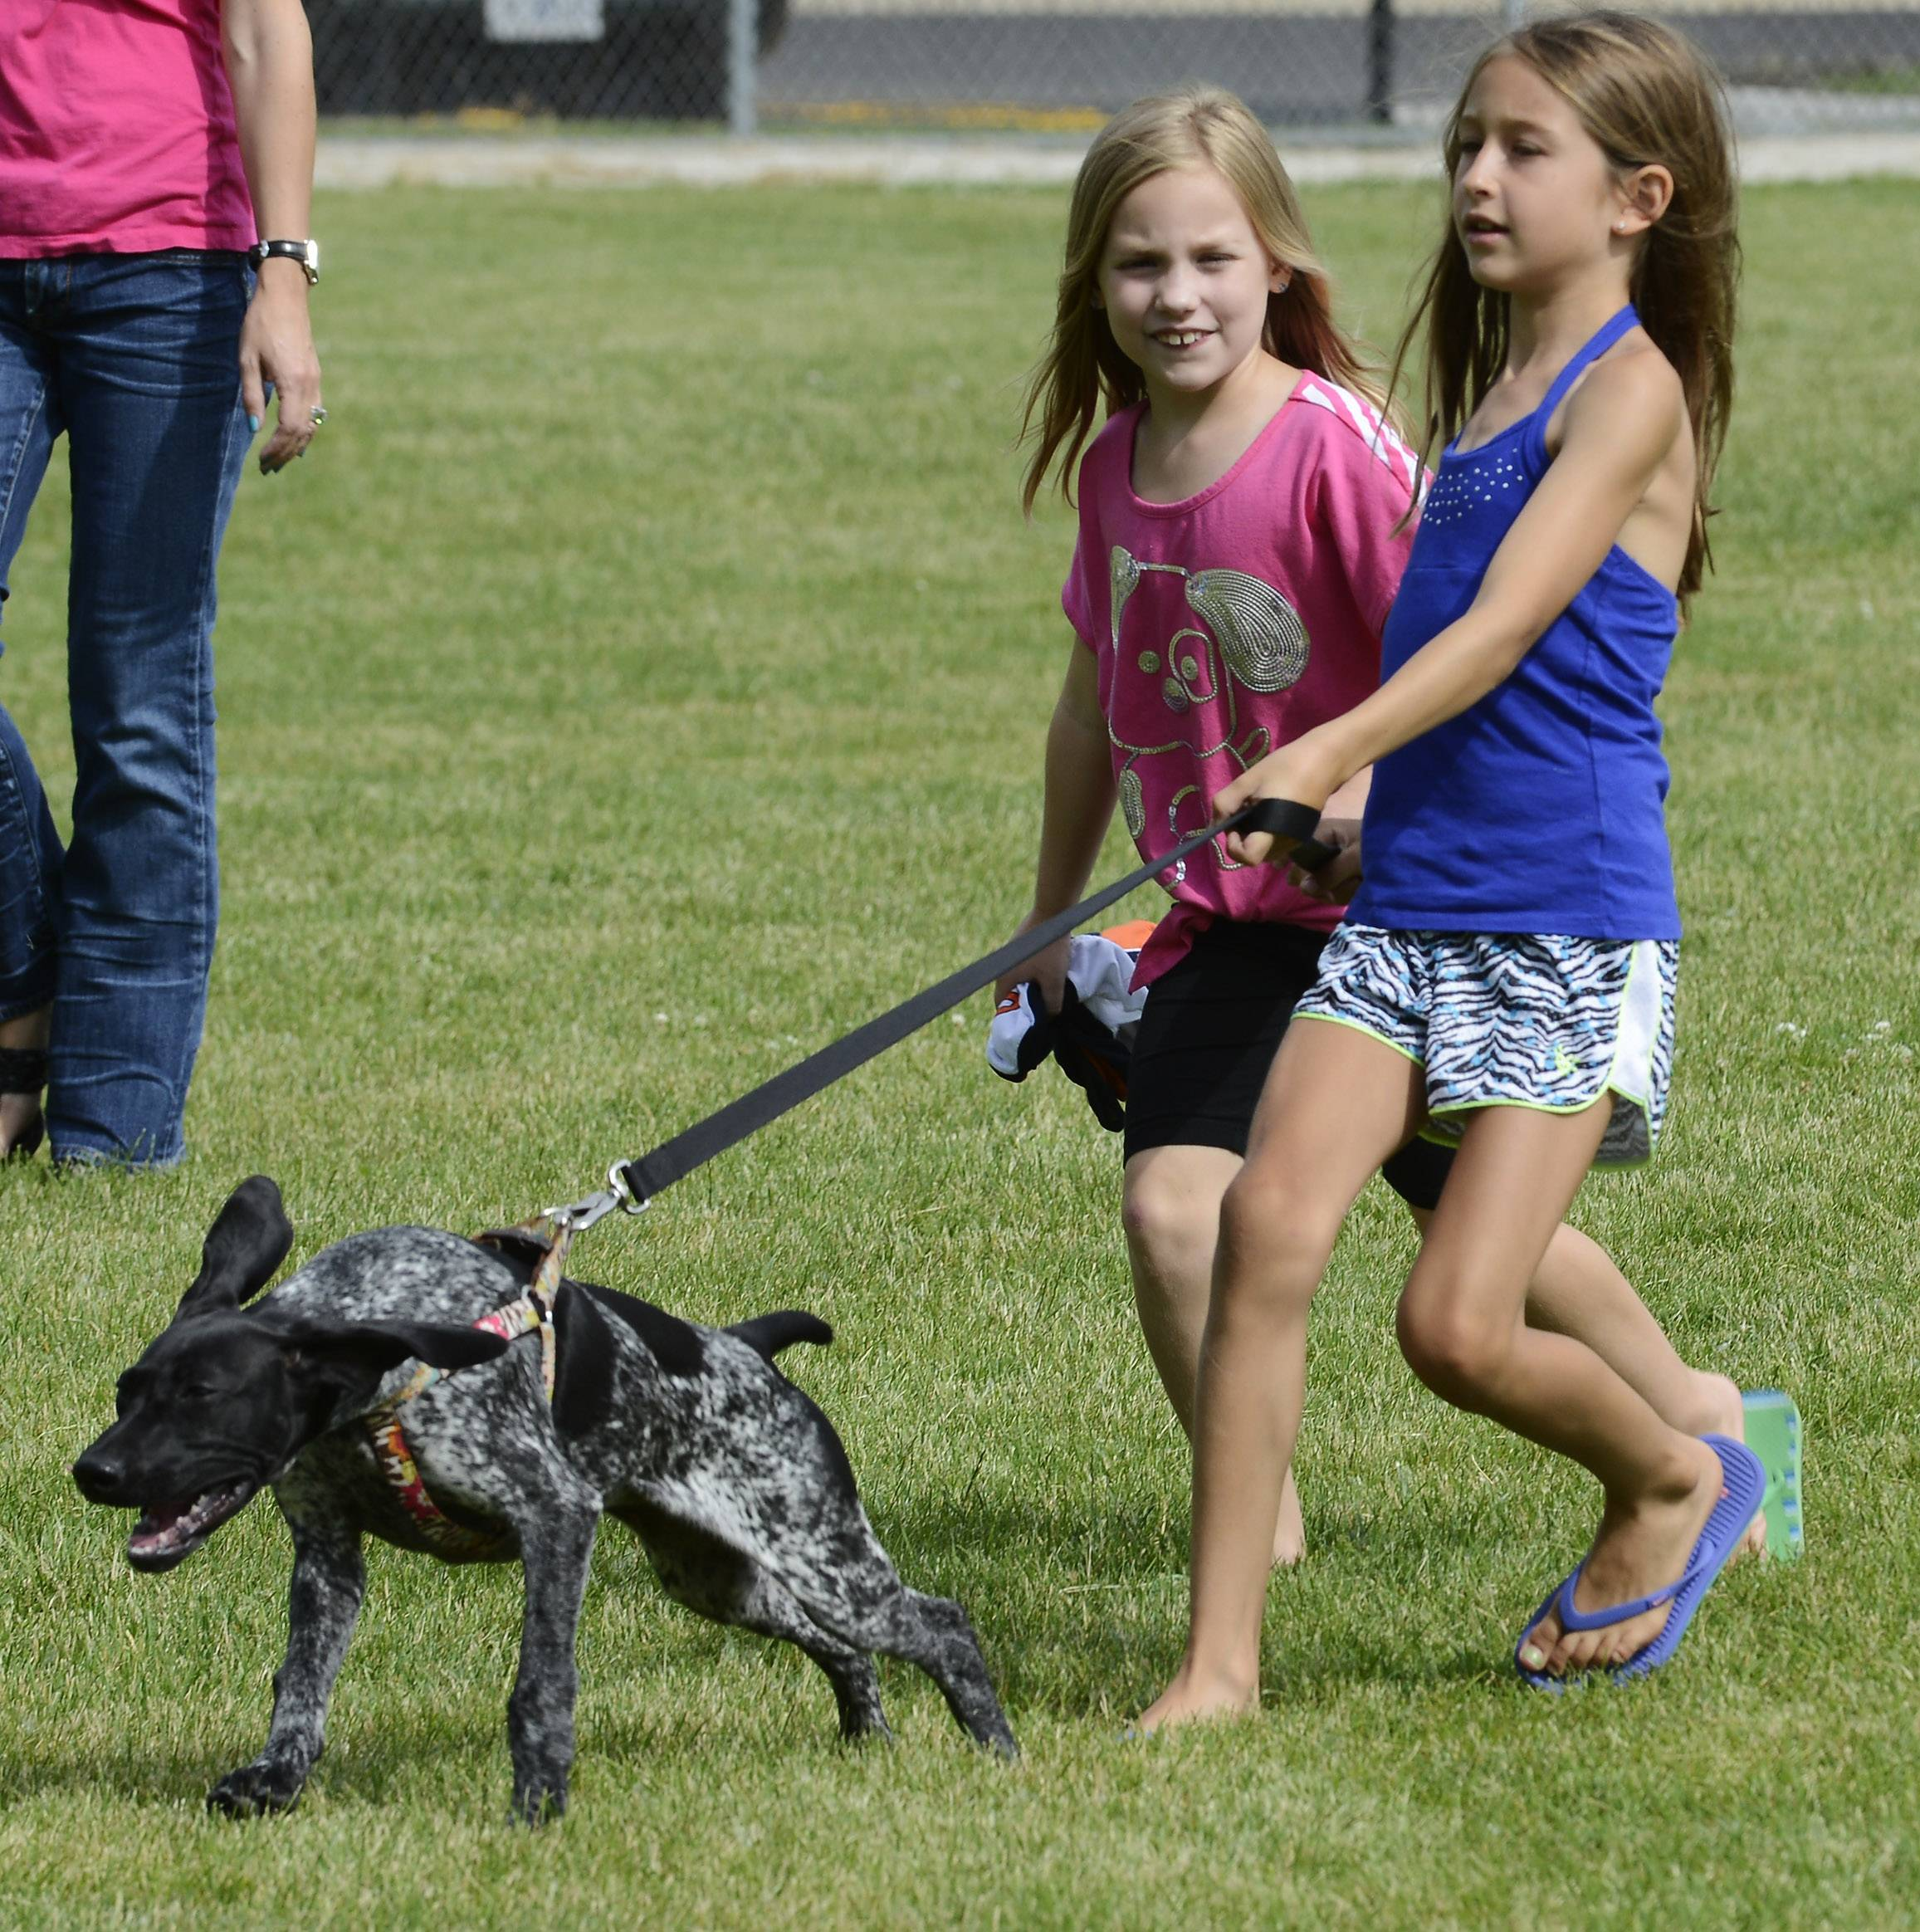 Ahsley Rycraft, 8, left, of Wheeling and her friend Erin Delariva, 8, of Prospect Heights hurry to register Erin's dog C.J., a German short-haired pointer, in the all-pet pageant at the Prospect Heights Block Party at Lions Park Saturday.